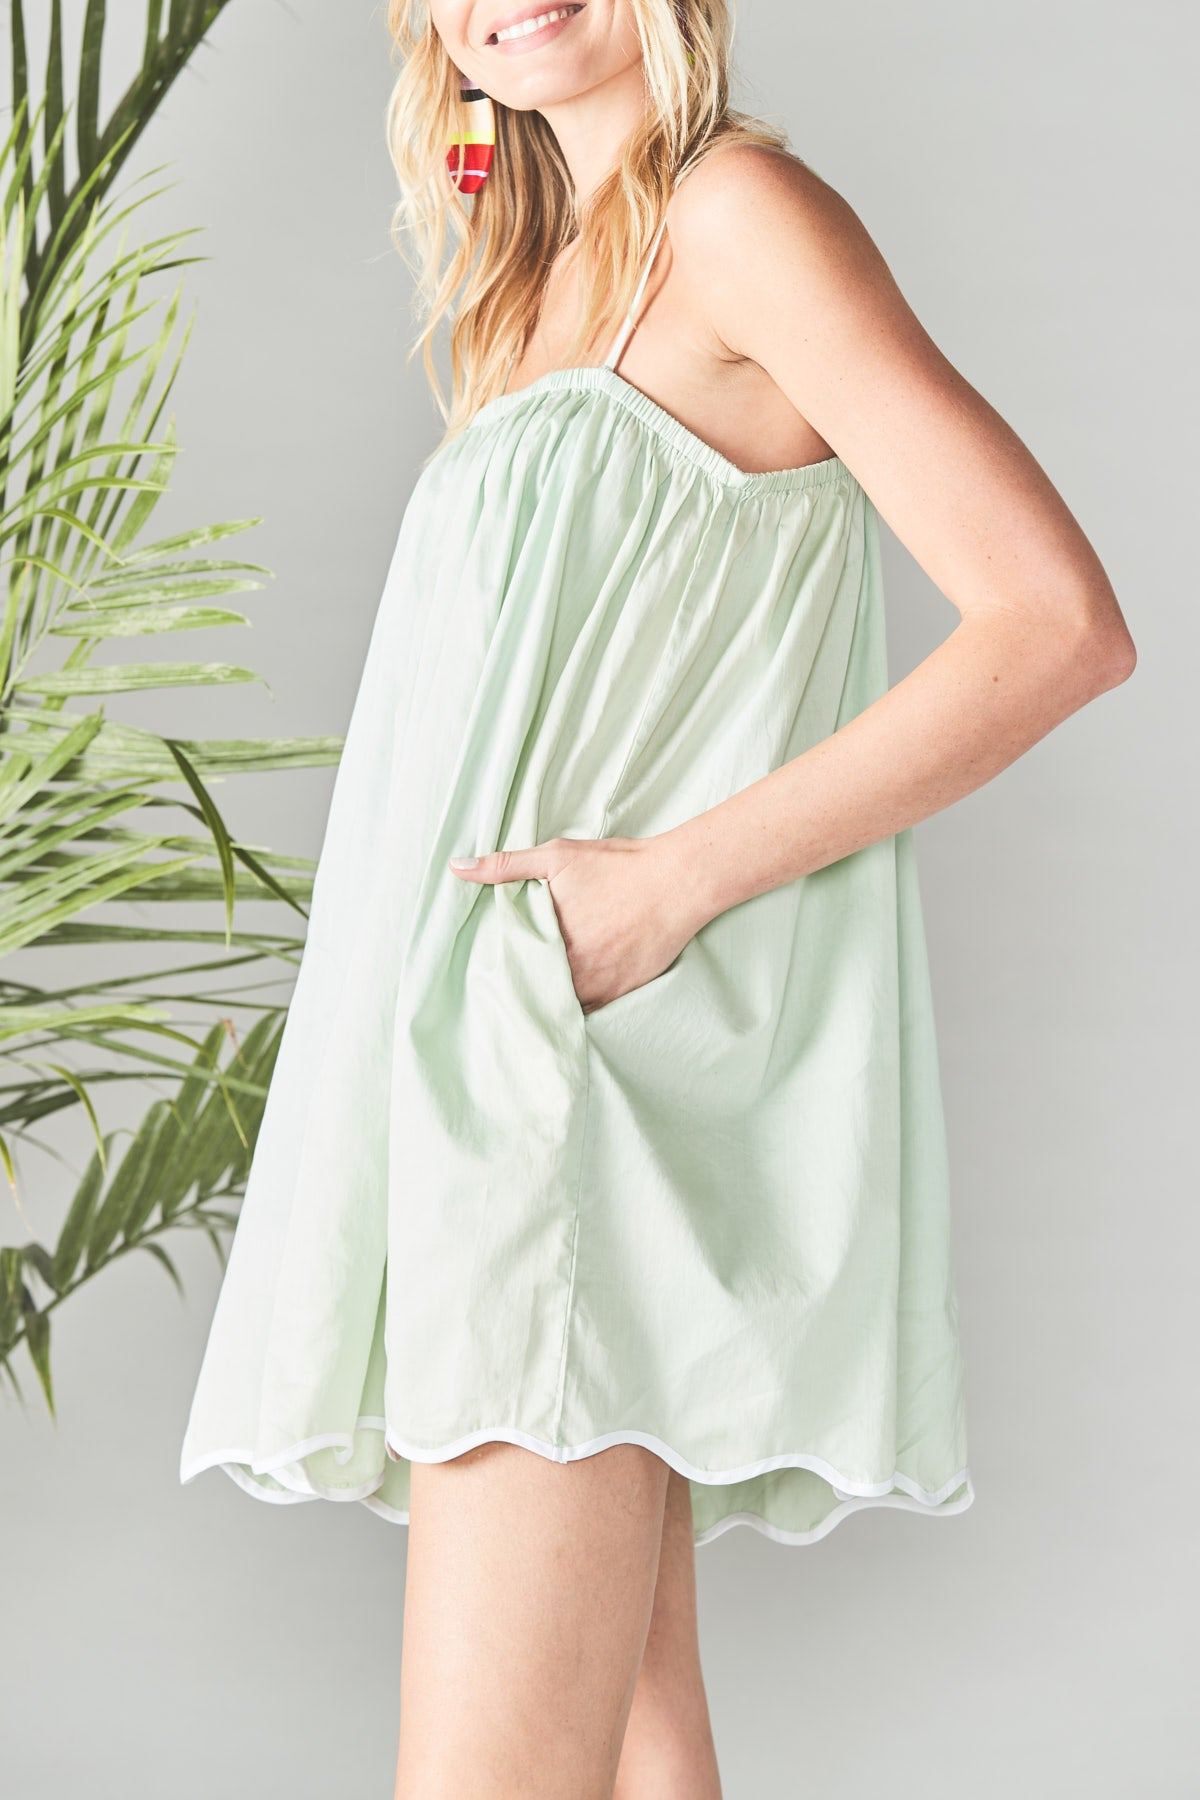 Wave Dress in Seafoam